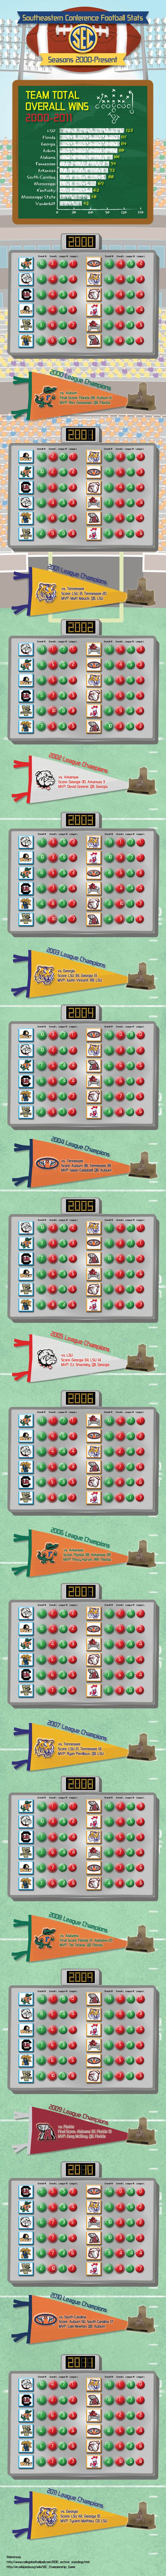 Who's the winningest team in the SEC since 2000? Not Alabama. Via http://www.aggieplanet.com/sec-football-stats-infographic